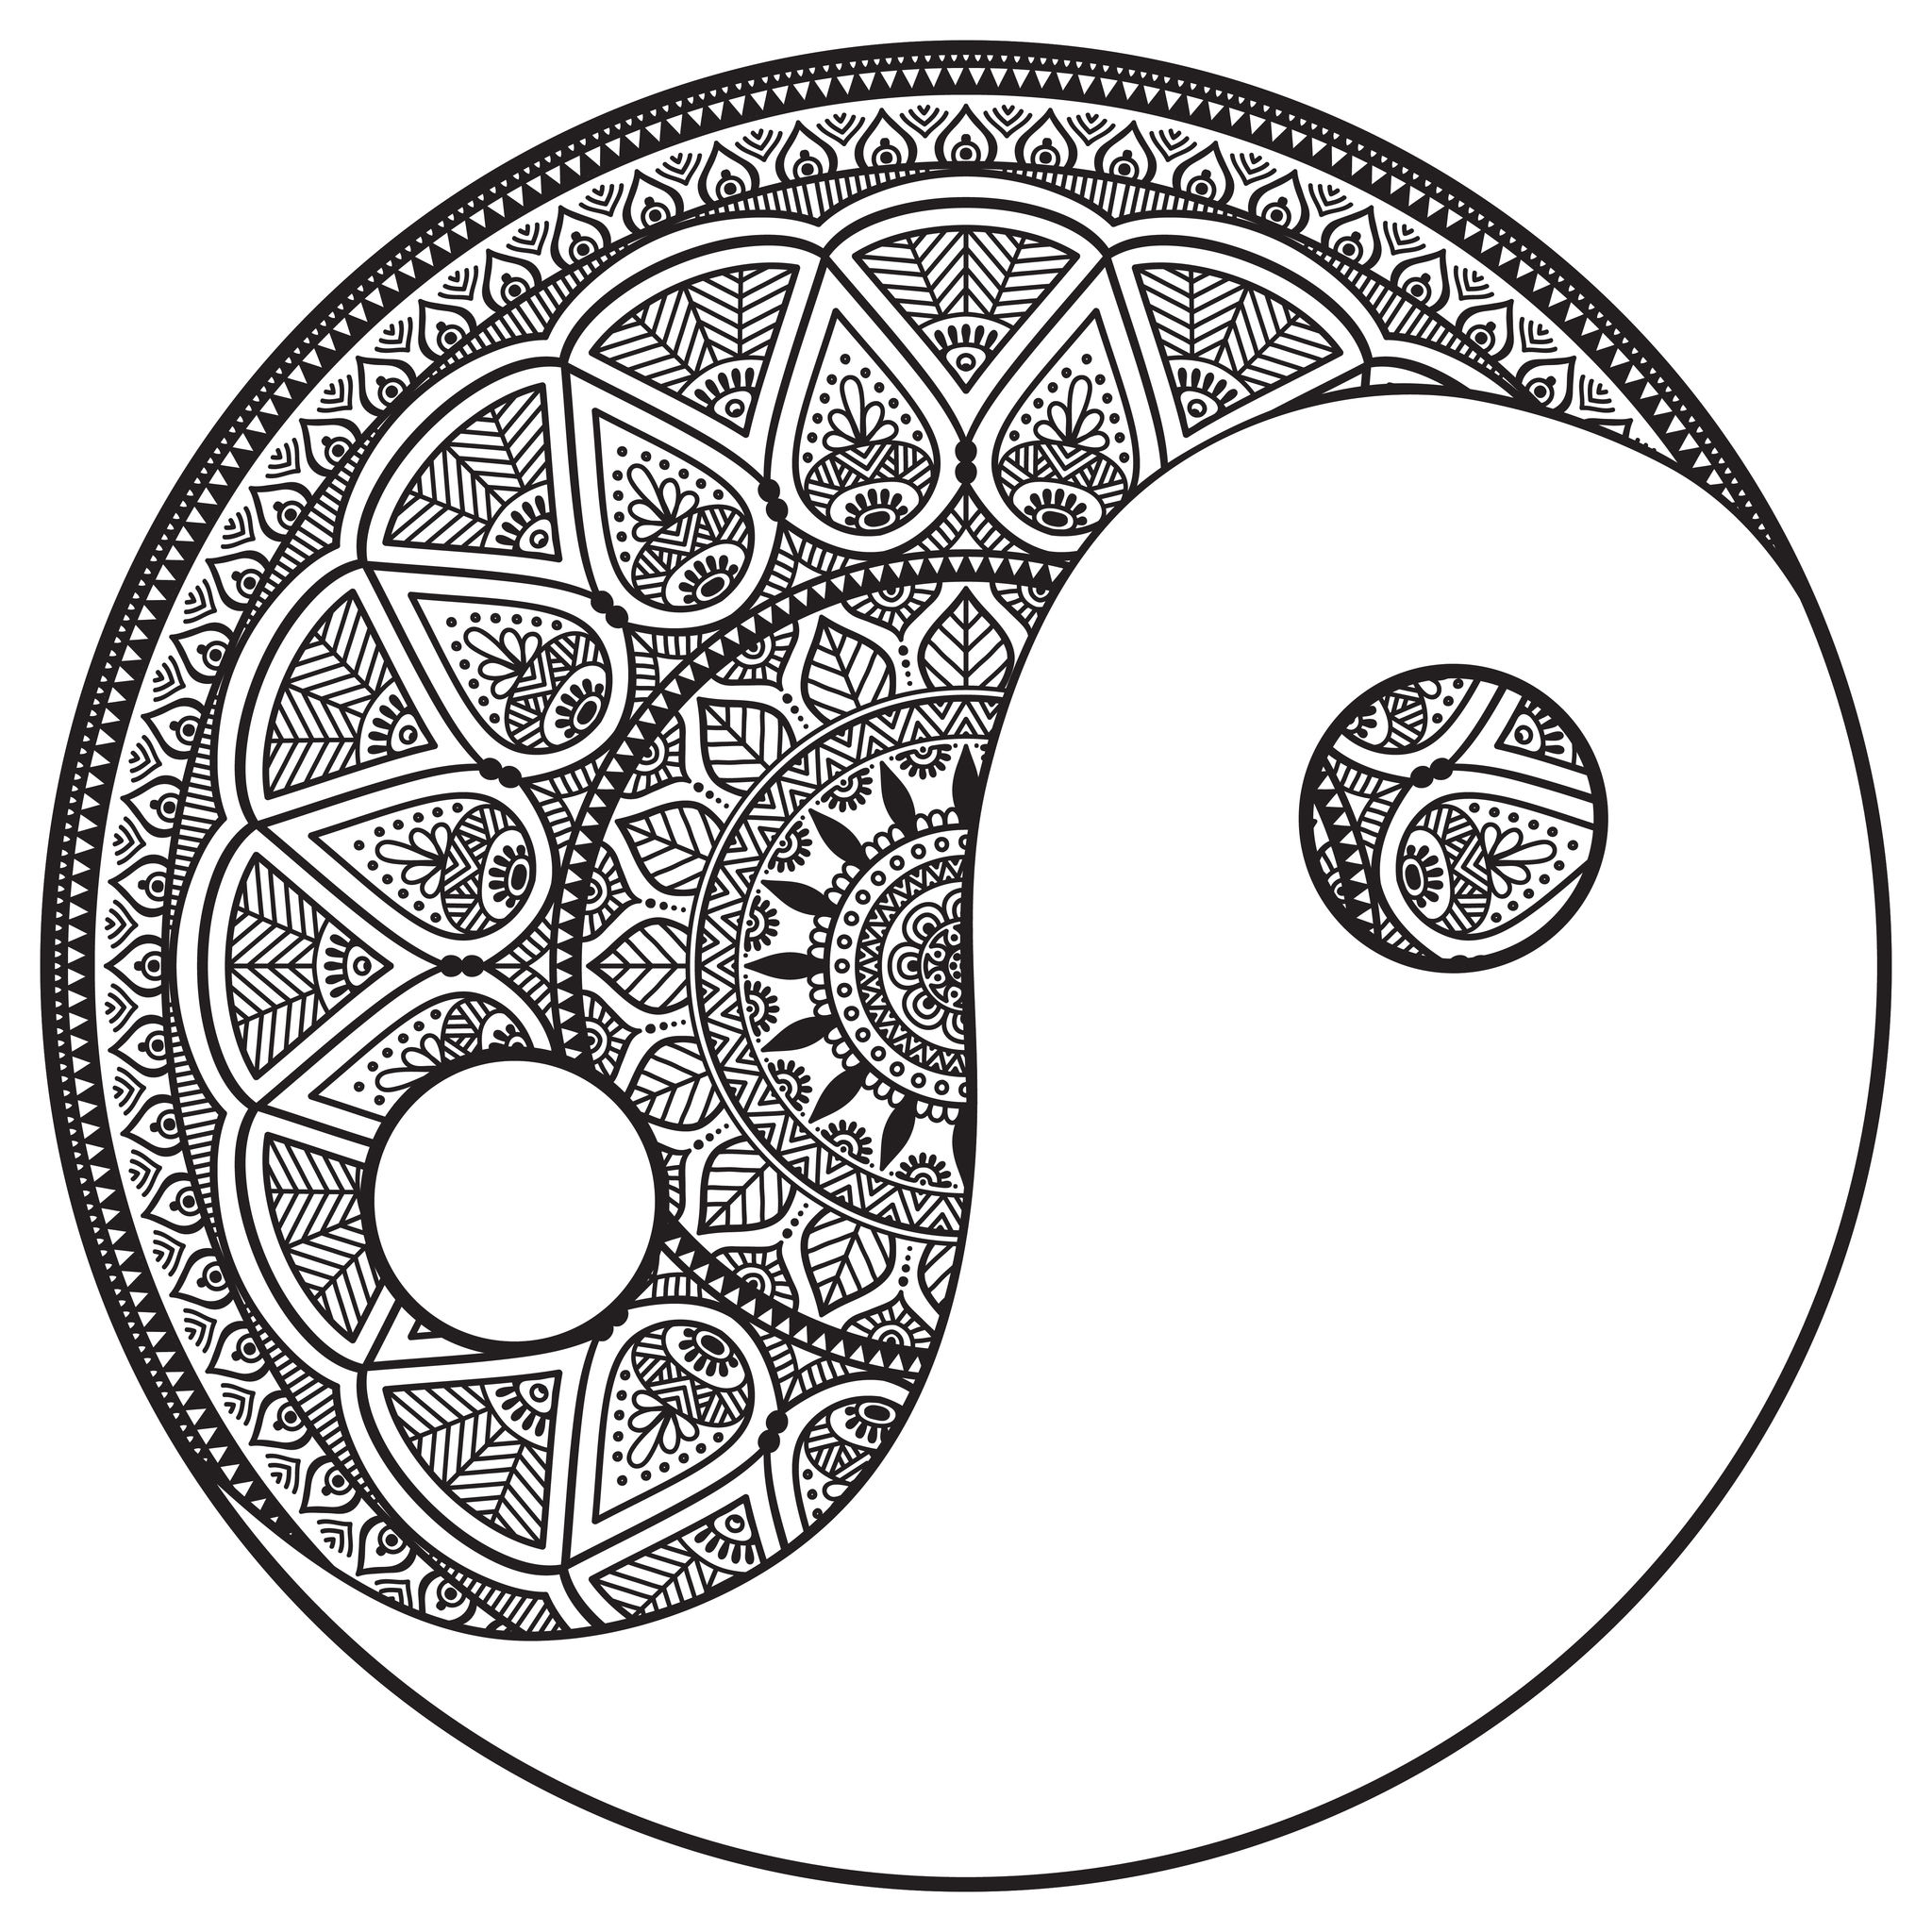 Mandala designs increase self-esteem and stimulate aesthetic sense. Discover it with this beautiful coloring page. Did you know ? Tibetan Buddhist Monks and Native American Indians all use mandalas as a way of evoking spiritual energy, meditation, and healing.